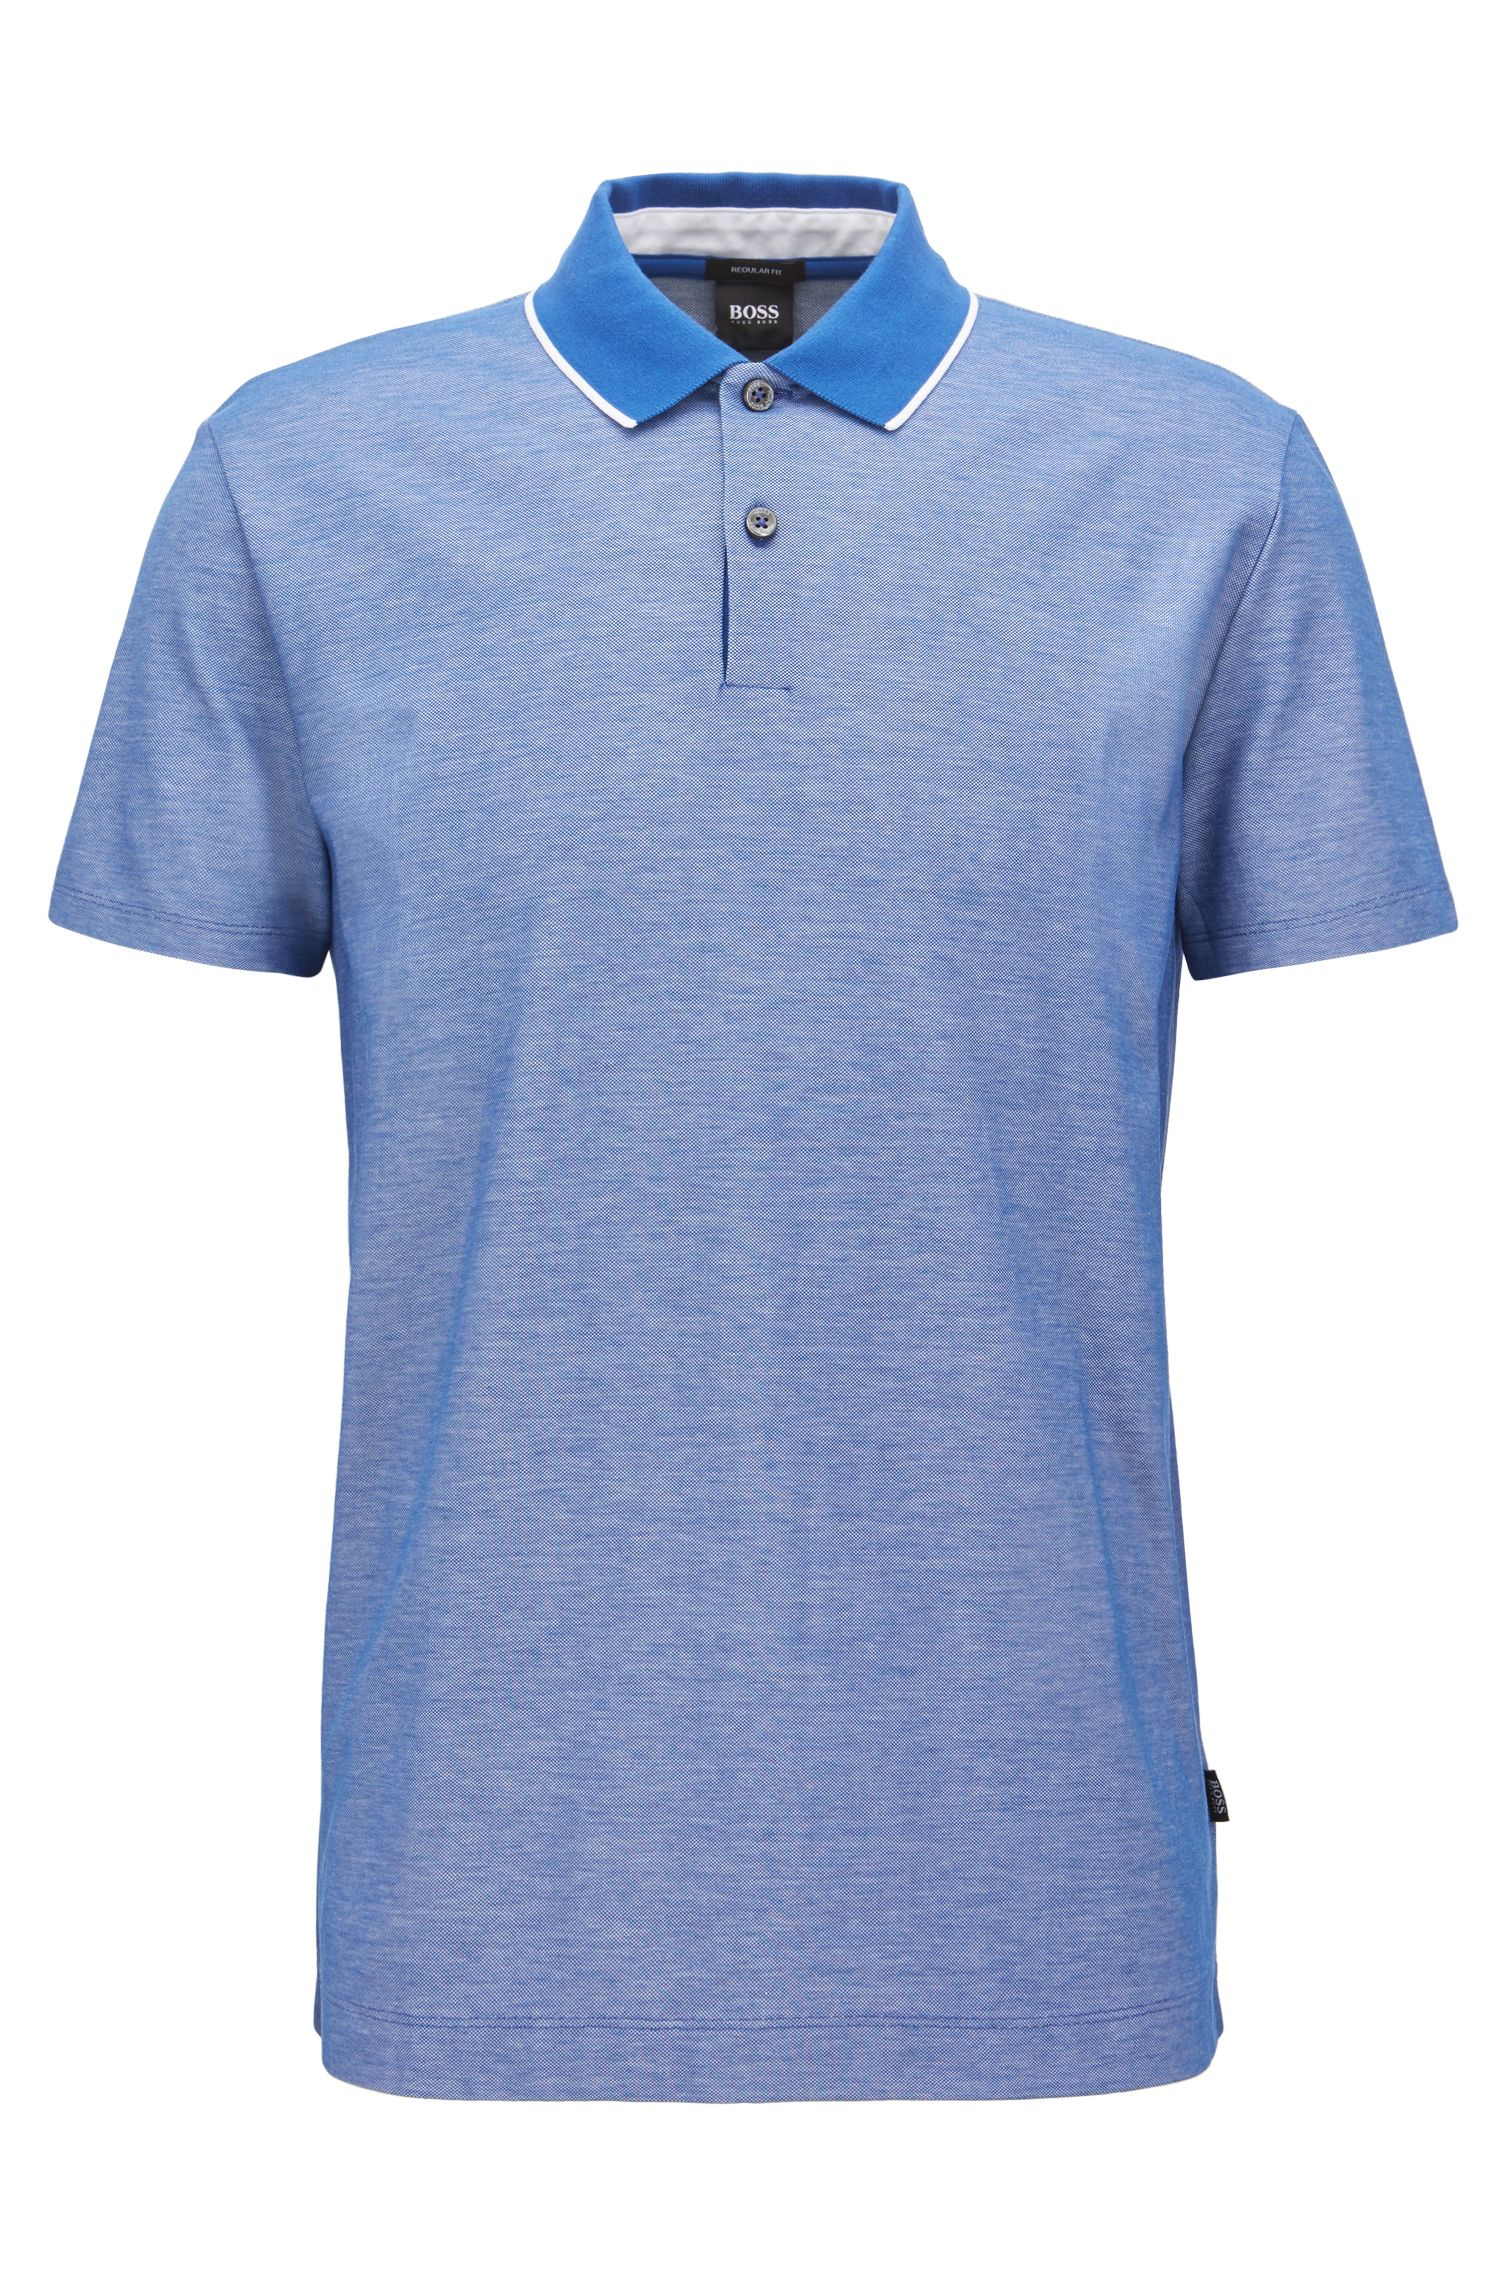 Regular-fit polo shirt in two-tone honeycomb cotton, Open Blue